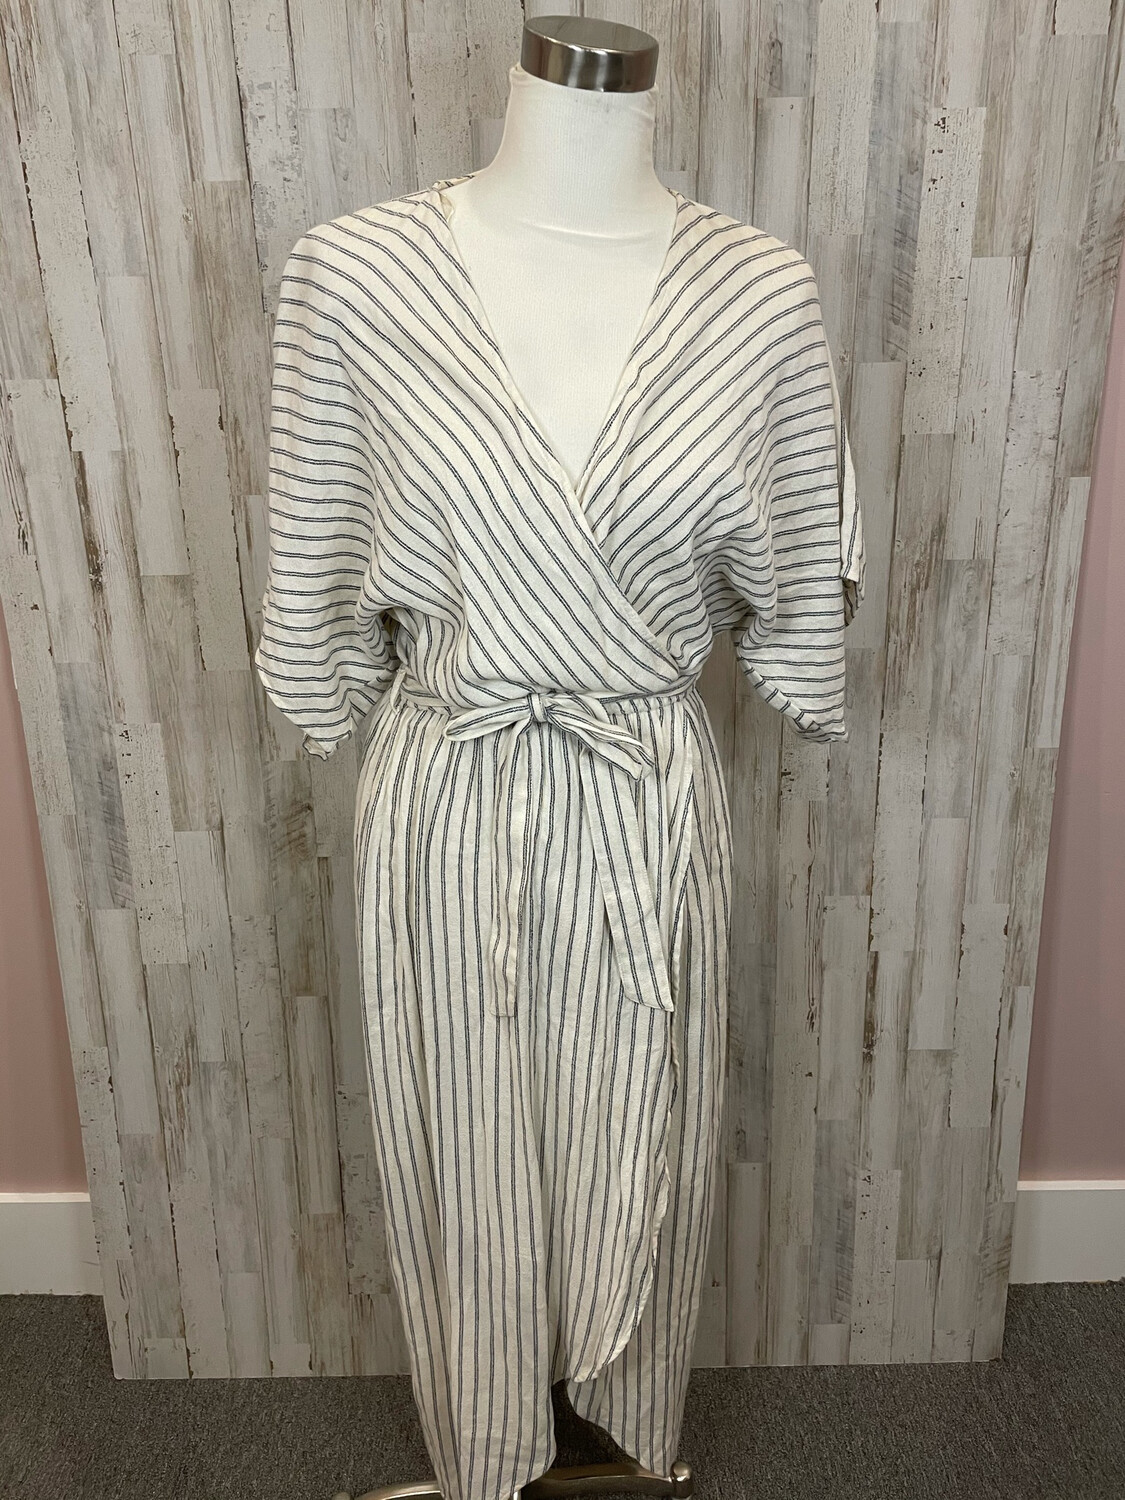 Lovestitch Cream Striped Belted Dress - S